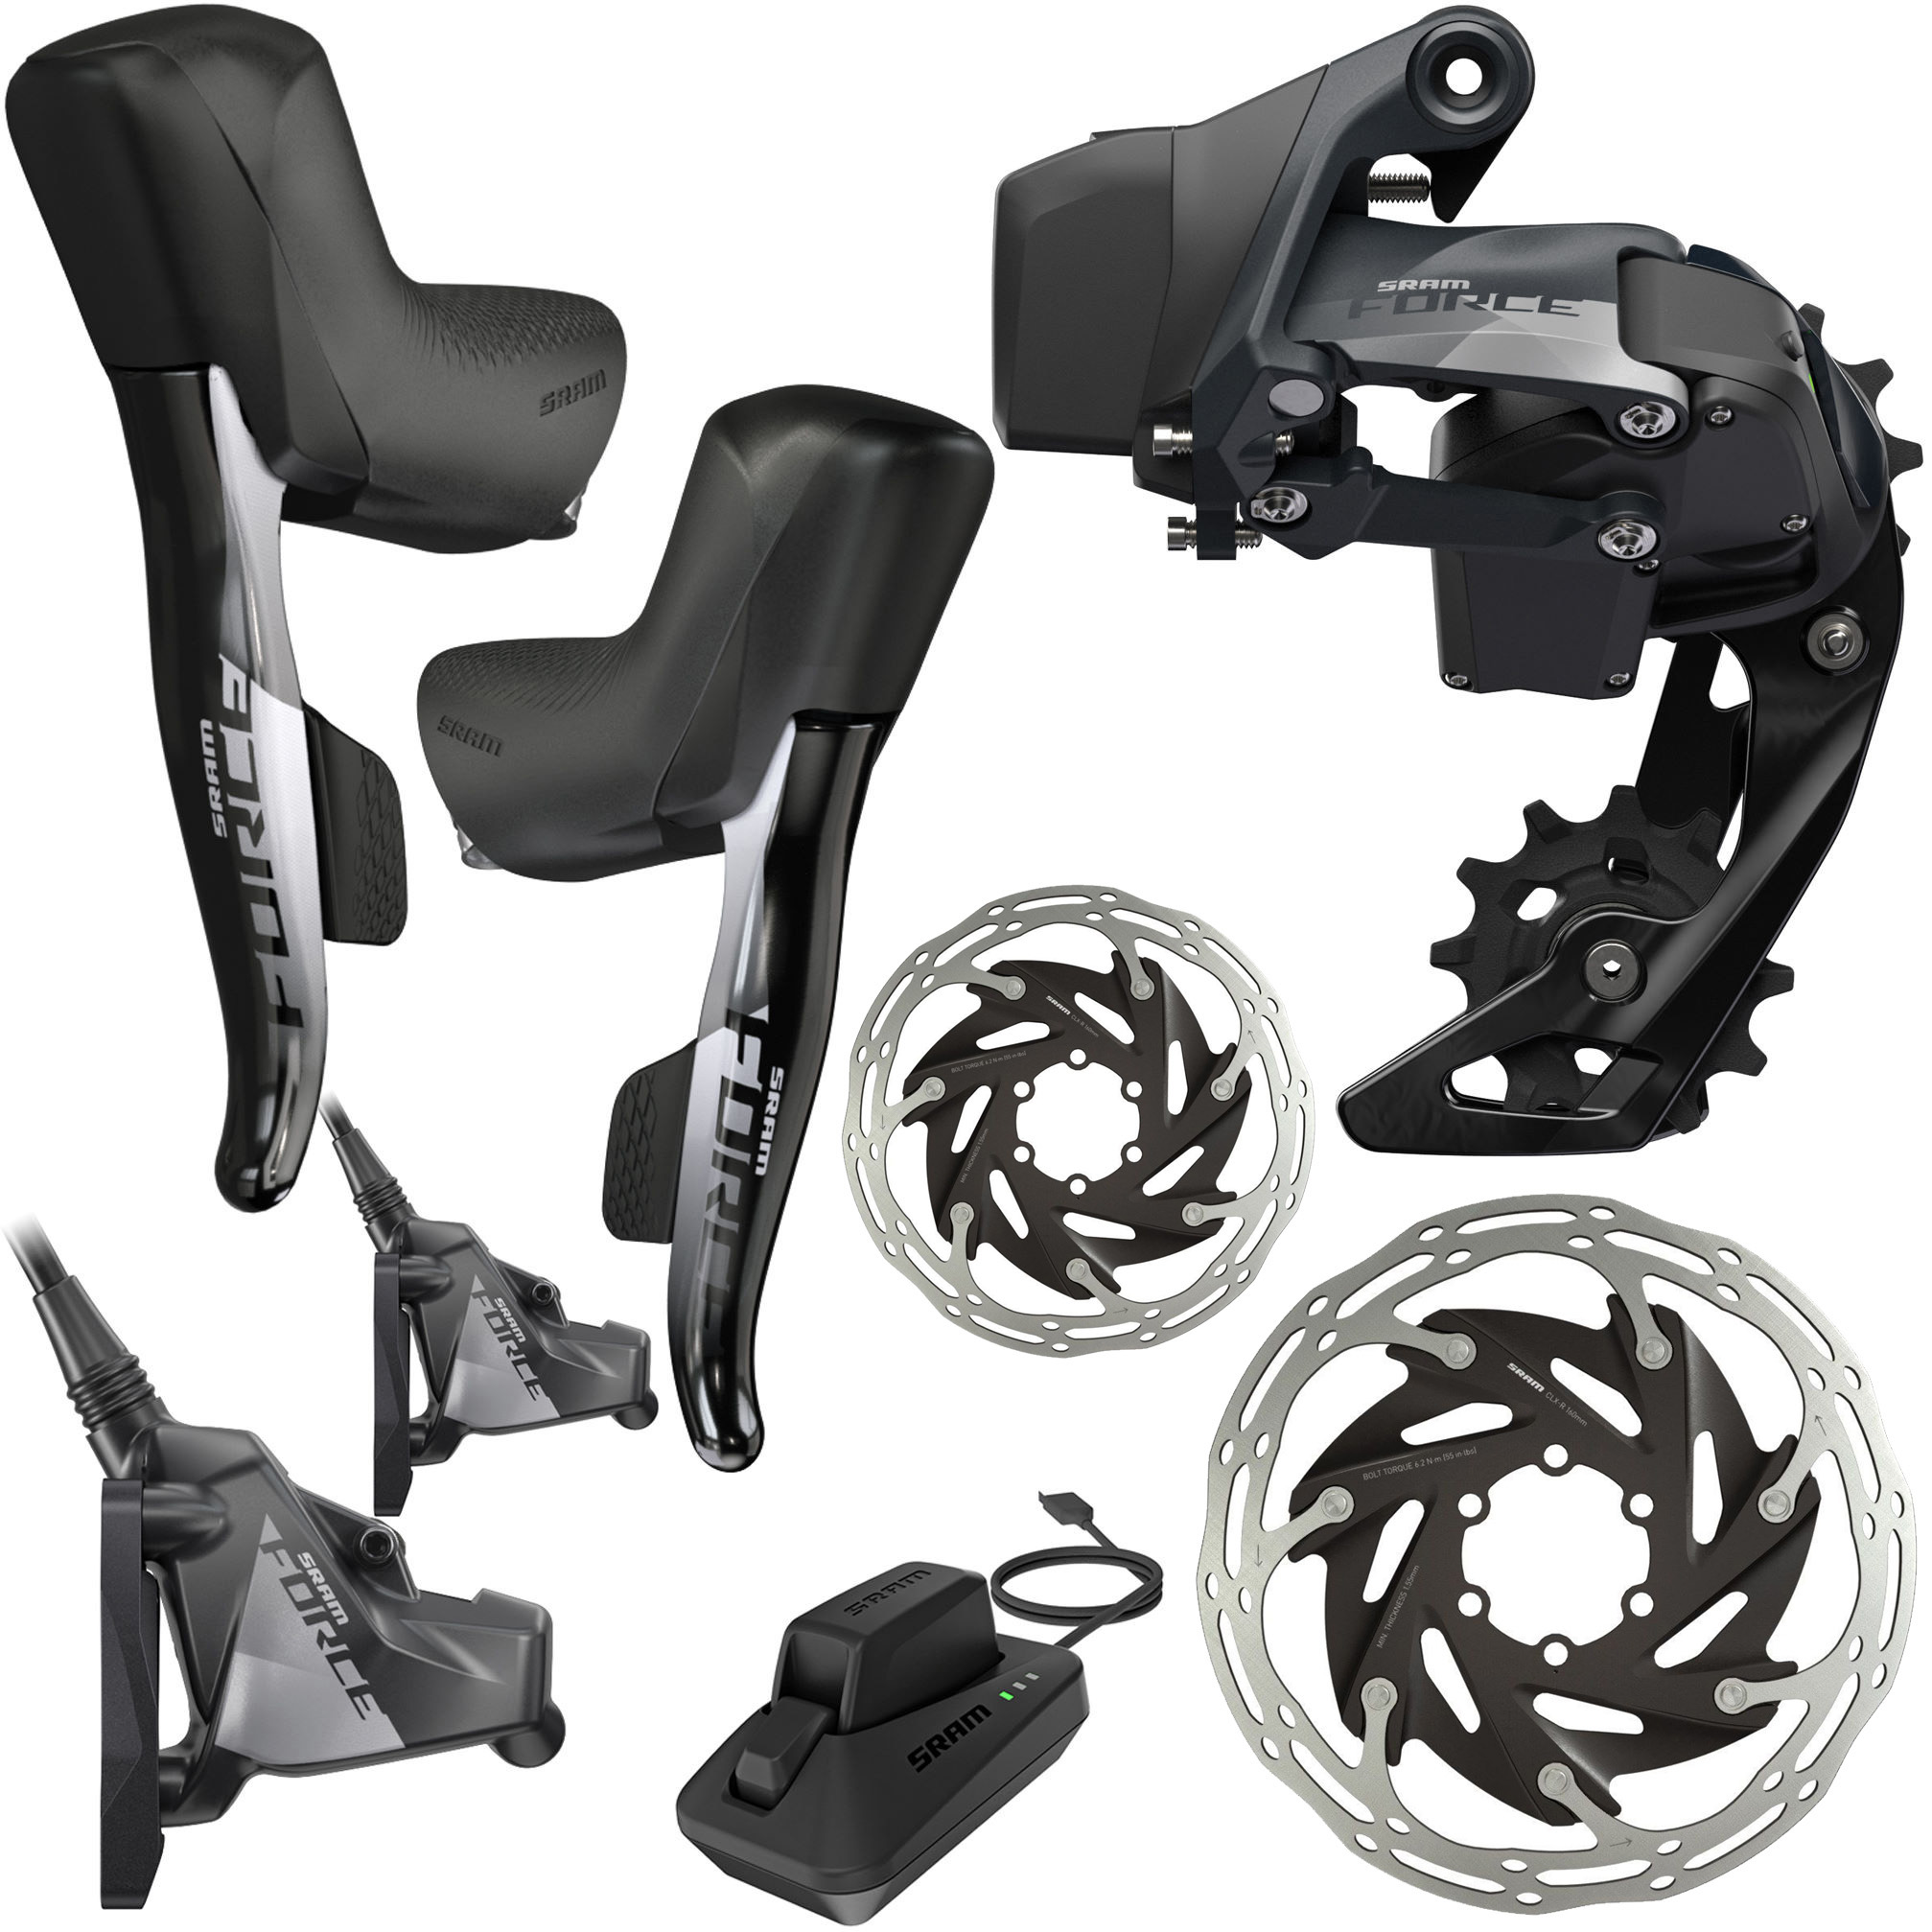 SRAM Force eTap AXS HRD FM 1x 12Sp Groupset | Groupsets